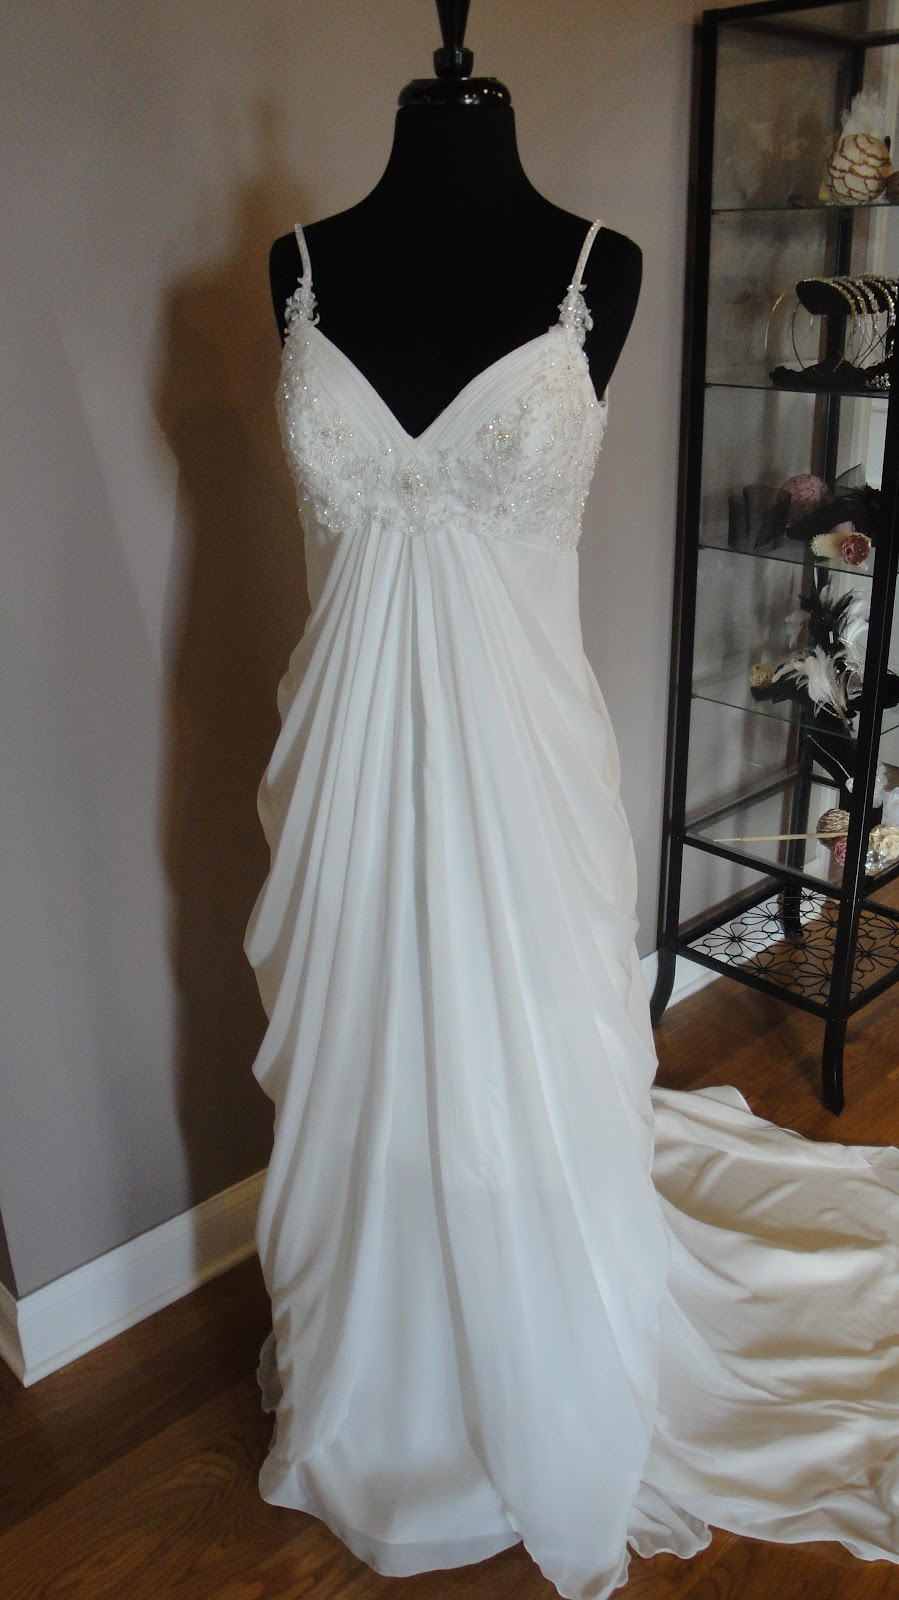 wedding gown features a